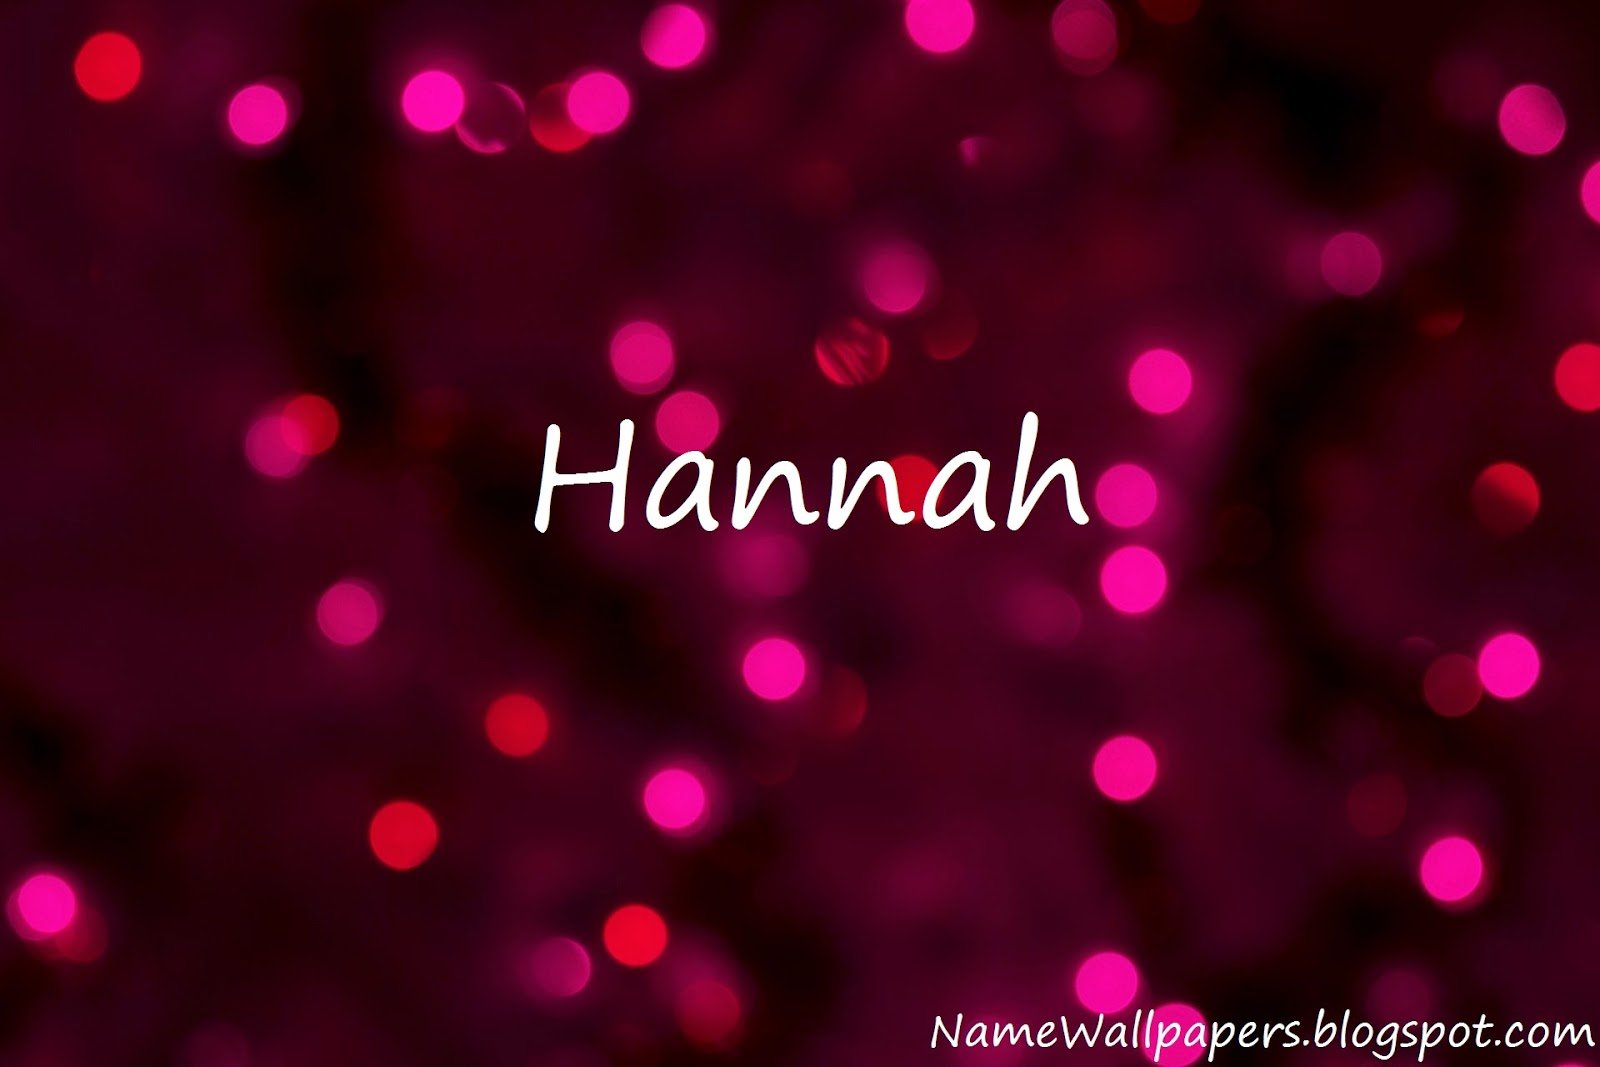 Hannah Name Wallpaper